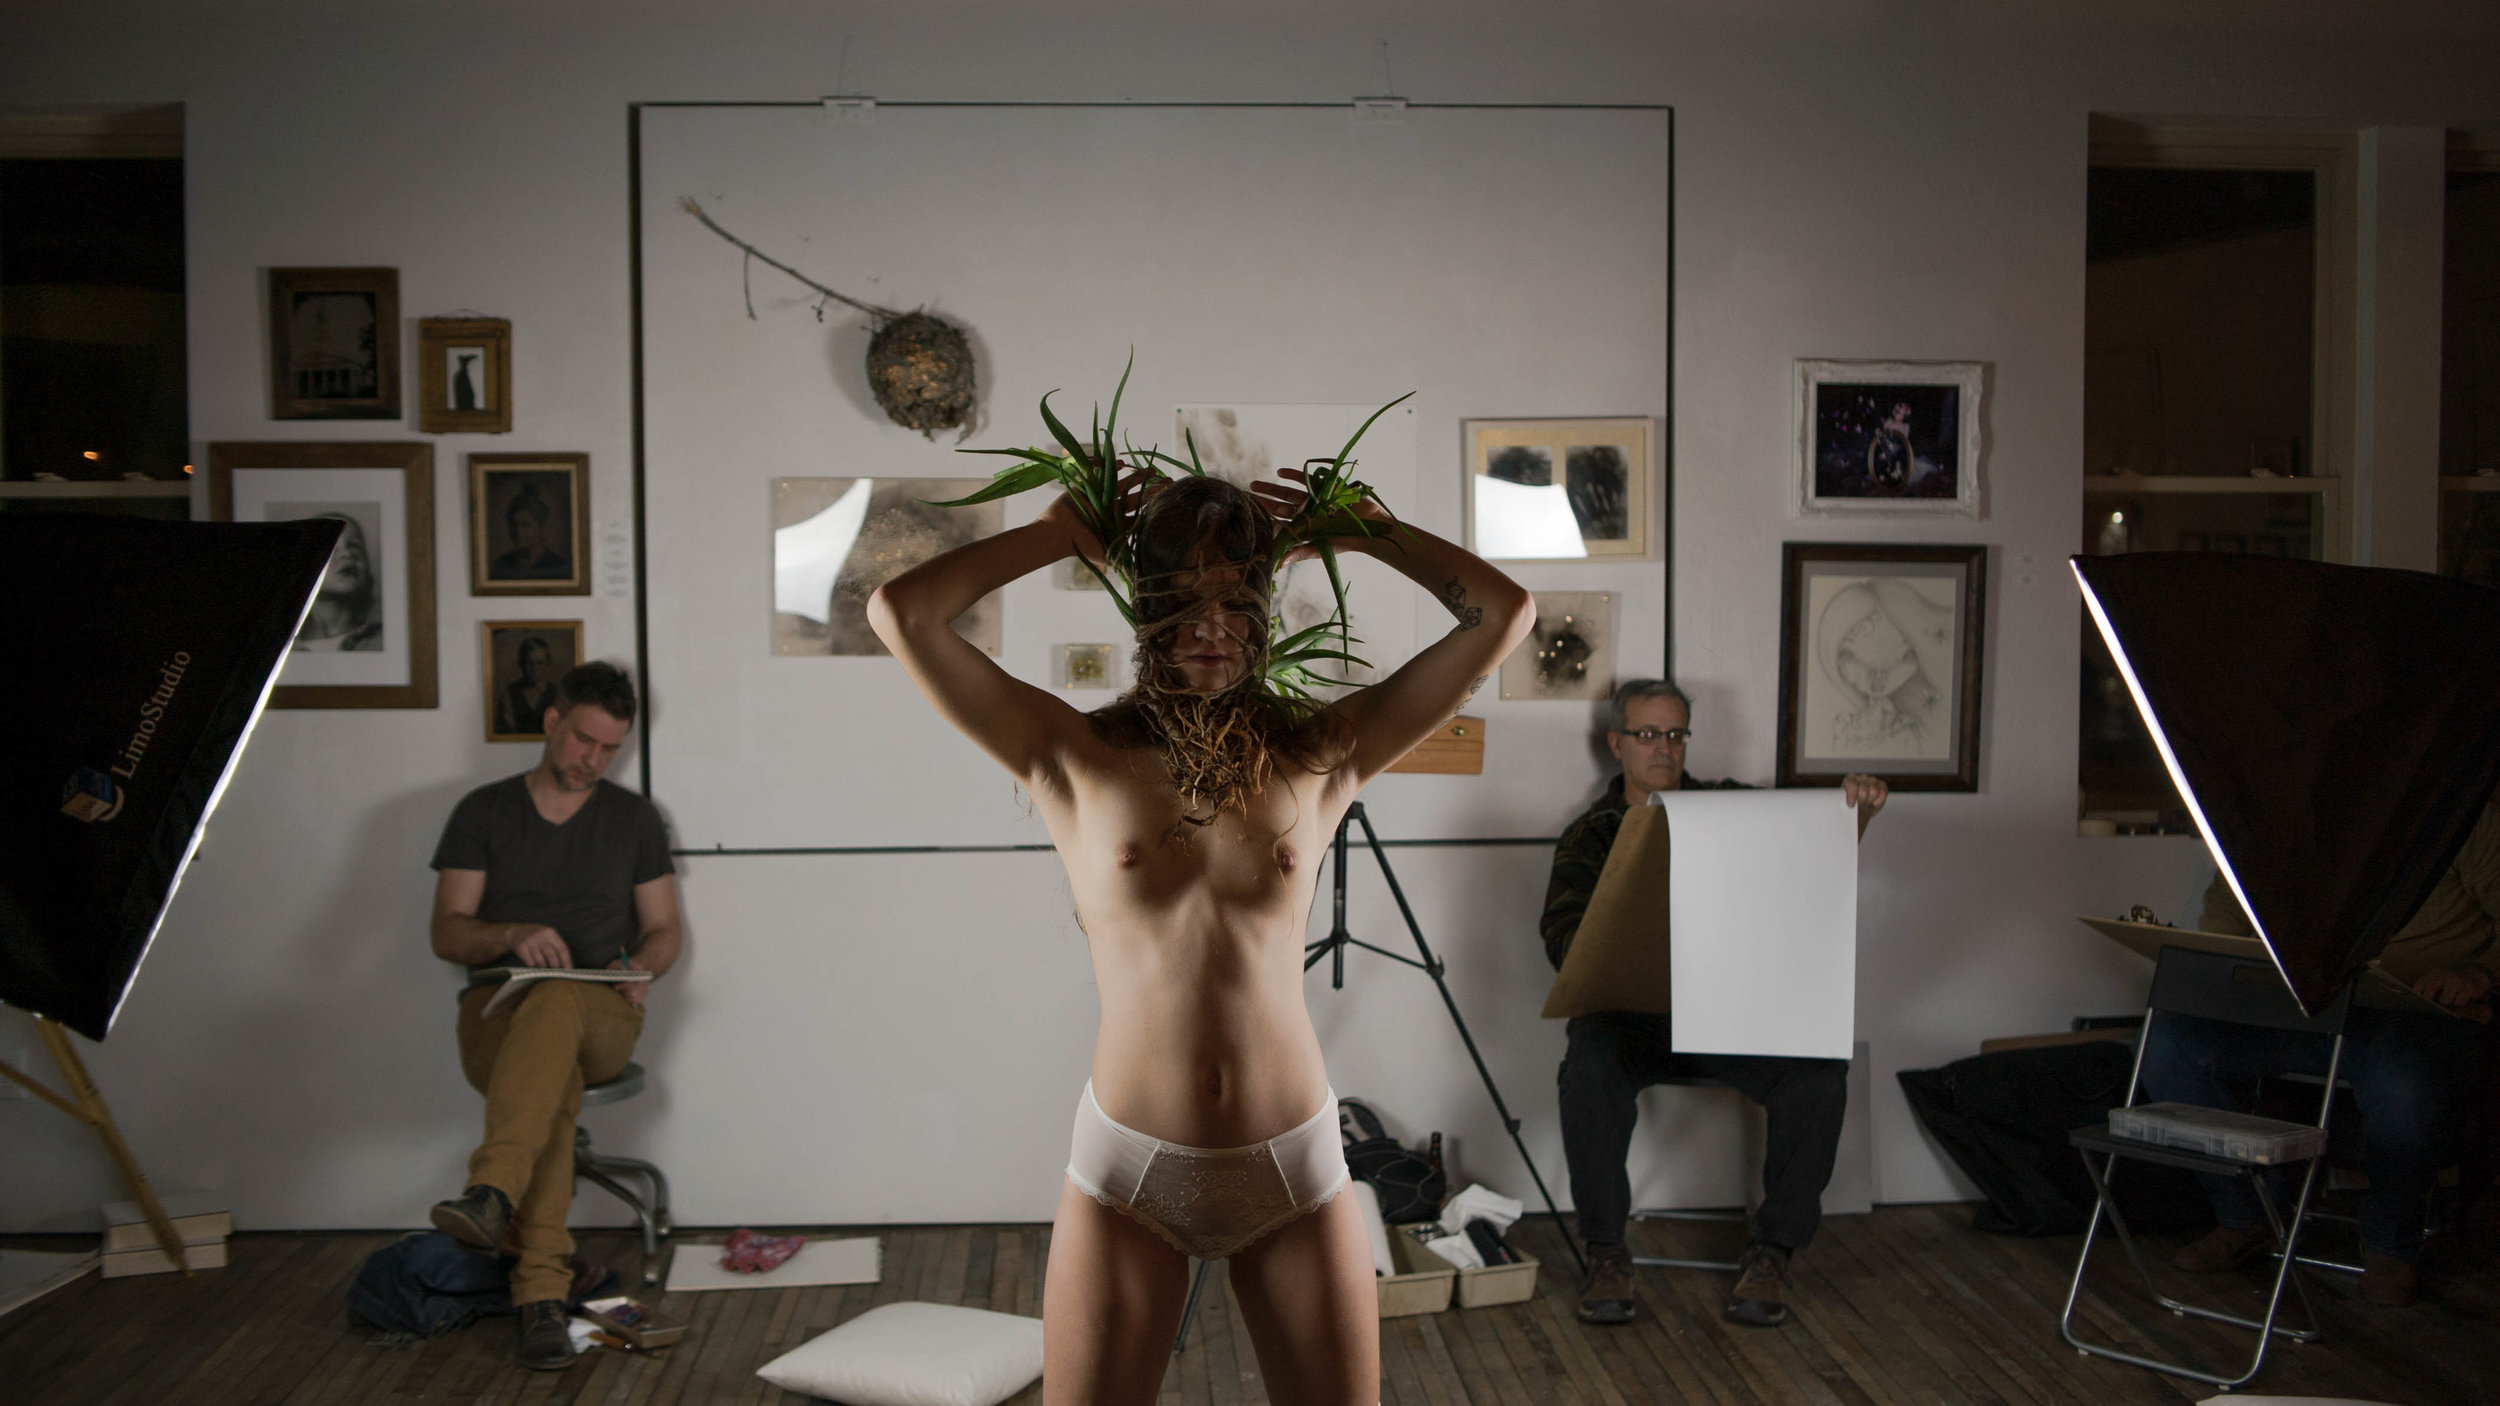 oliver franklin anderson, aloe, bondage, rope, tie, bdsm, plant, life drawing, figure drawing, nude, model, topless, white stockings, hair, underwear, pose, art, fashion film, fashion photography, fashion, photography, drawing, art, wisconsin, appleton, erotic